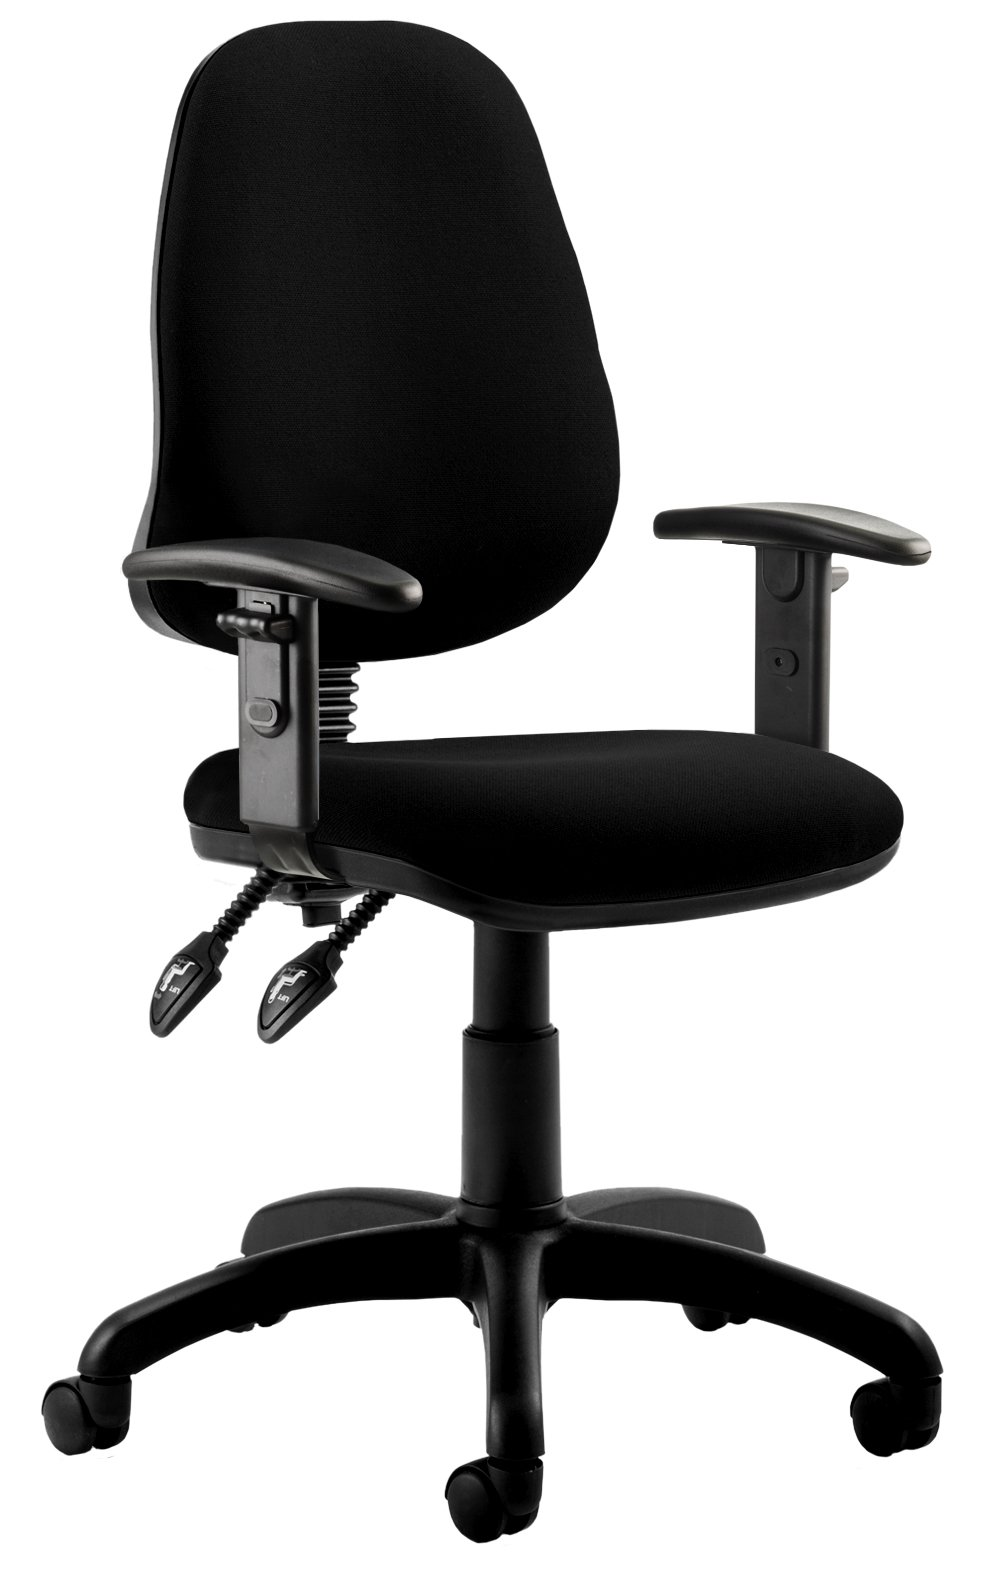 Height Adjustable Chair Gentoo Eclipse 2 Chair With Height Adjustable Arms